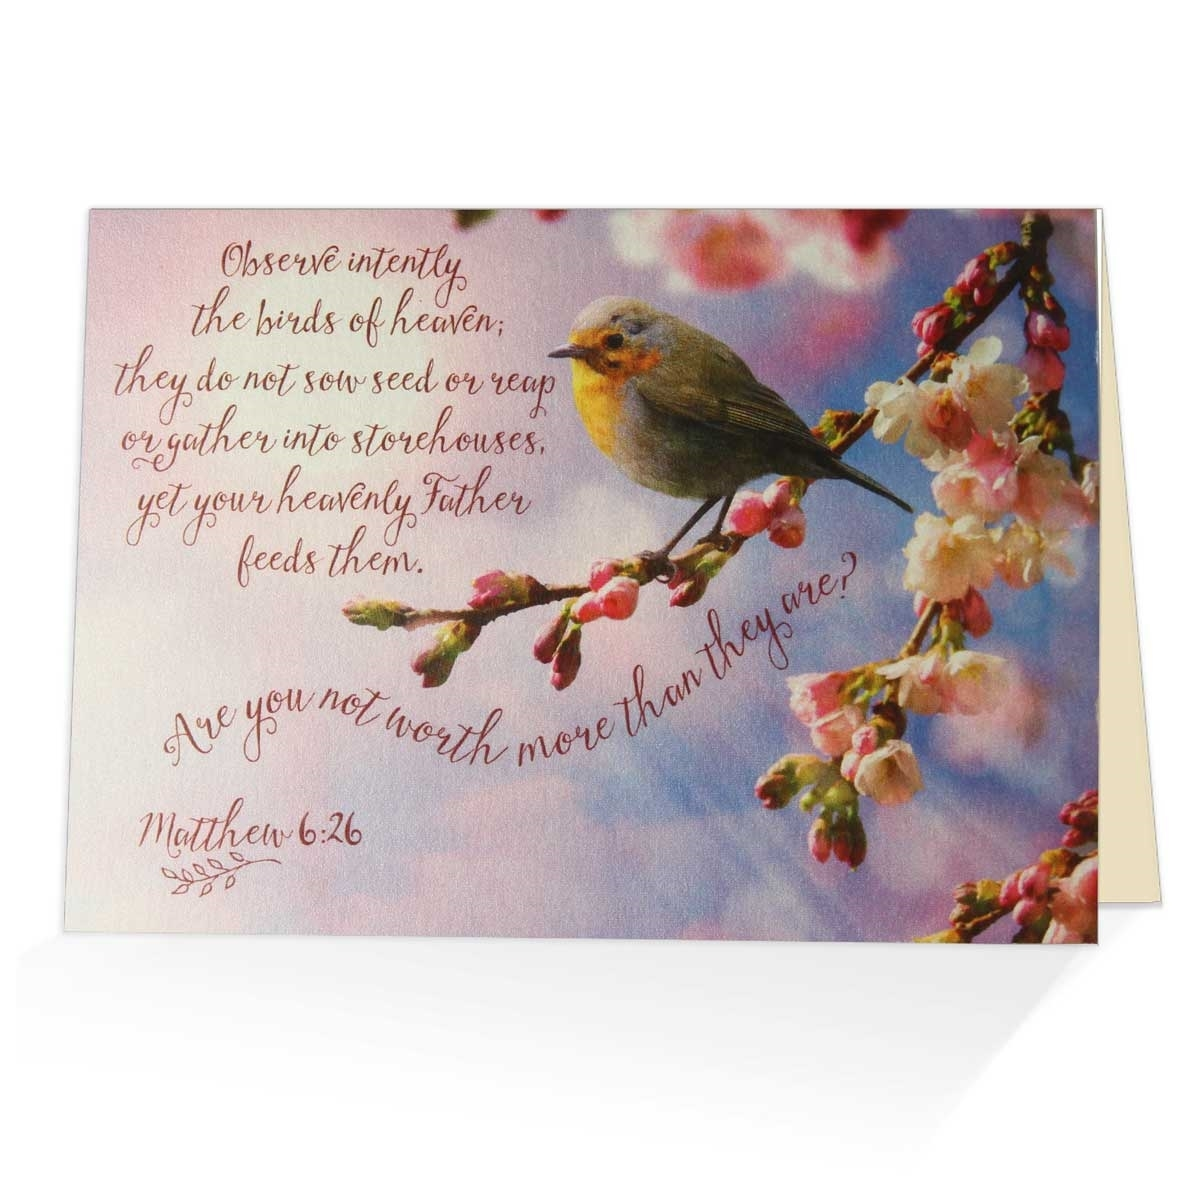 Matthew 626 Greeting Card Biblical Encouragement Card